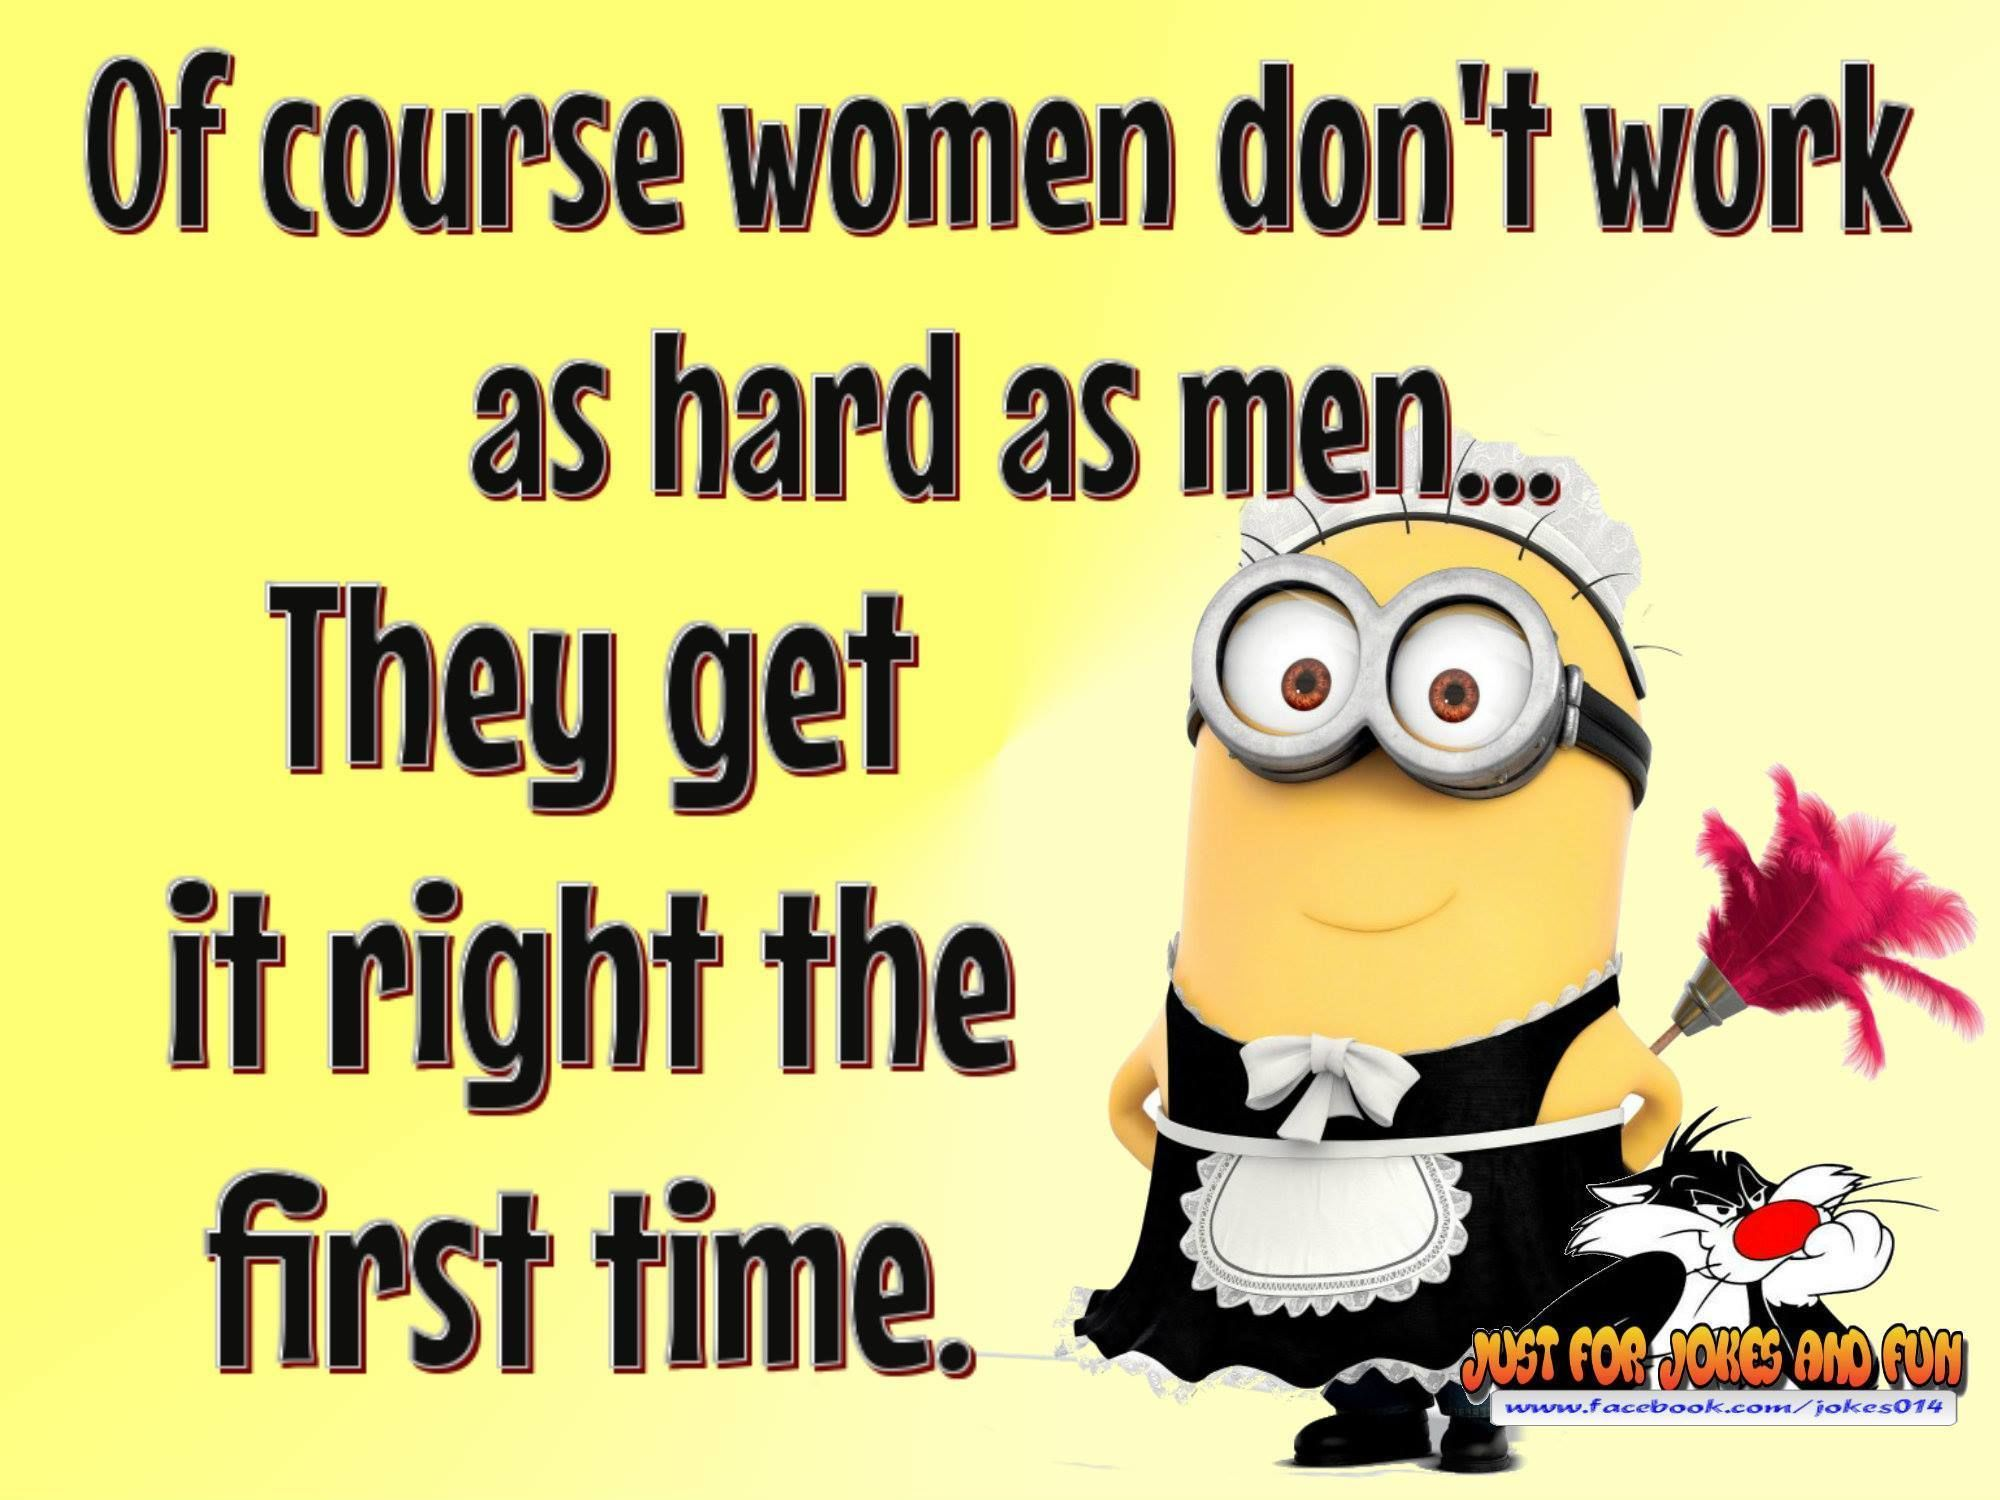 Women Dpnt Work As Hard As Men Because They Get It Right The First Time funny quotes quote crazy funny quote funny quotes funny sayings best quotes women